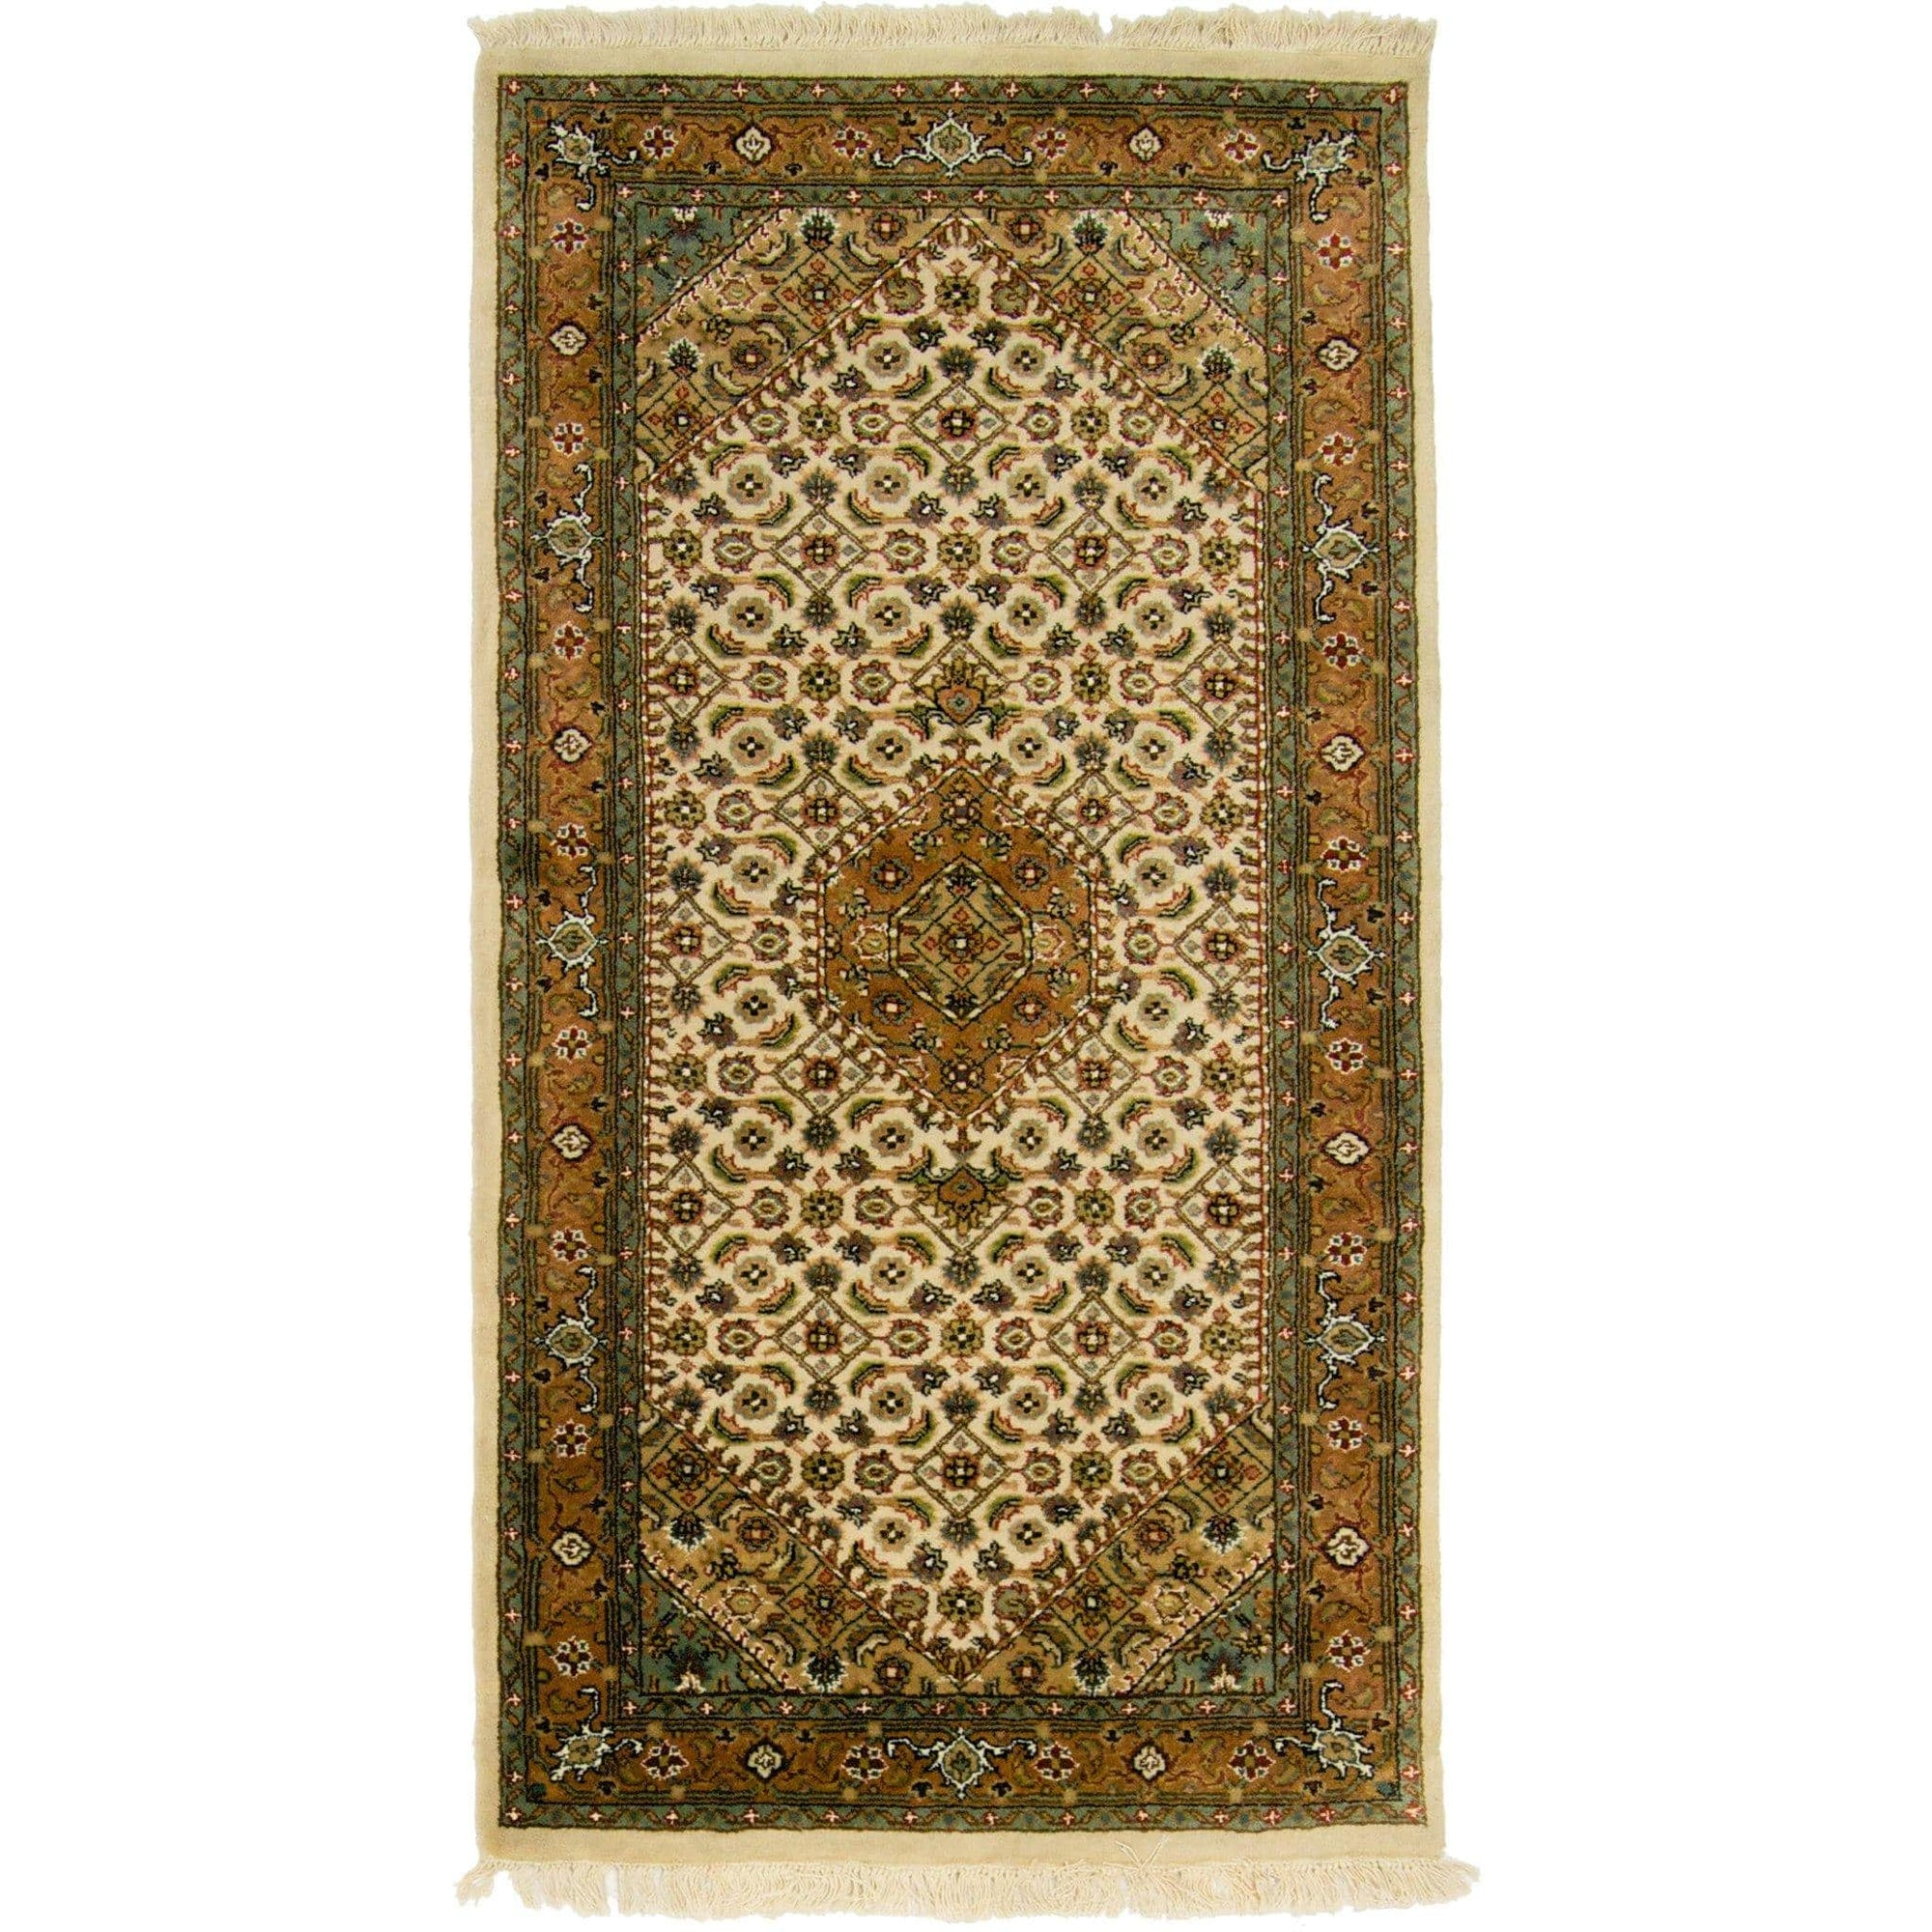 Fine Hand-knotted Wool Bijar Rug 70cm x 138cm Persian-Rug | House-of-Haghi | NewMarket | Auckland | NZ | Handmade Persian Rugs | Hand Knotted Persian Rugs